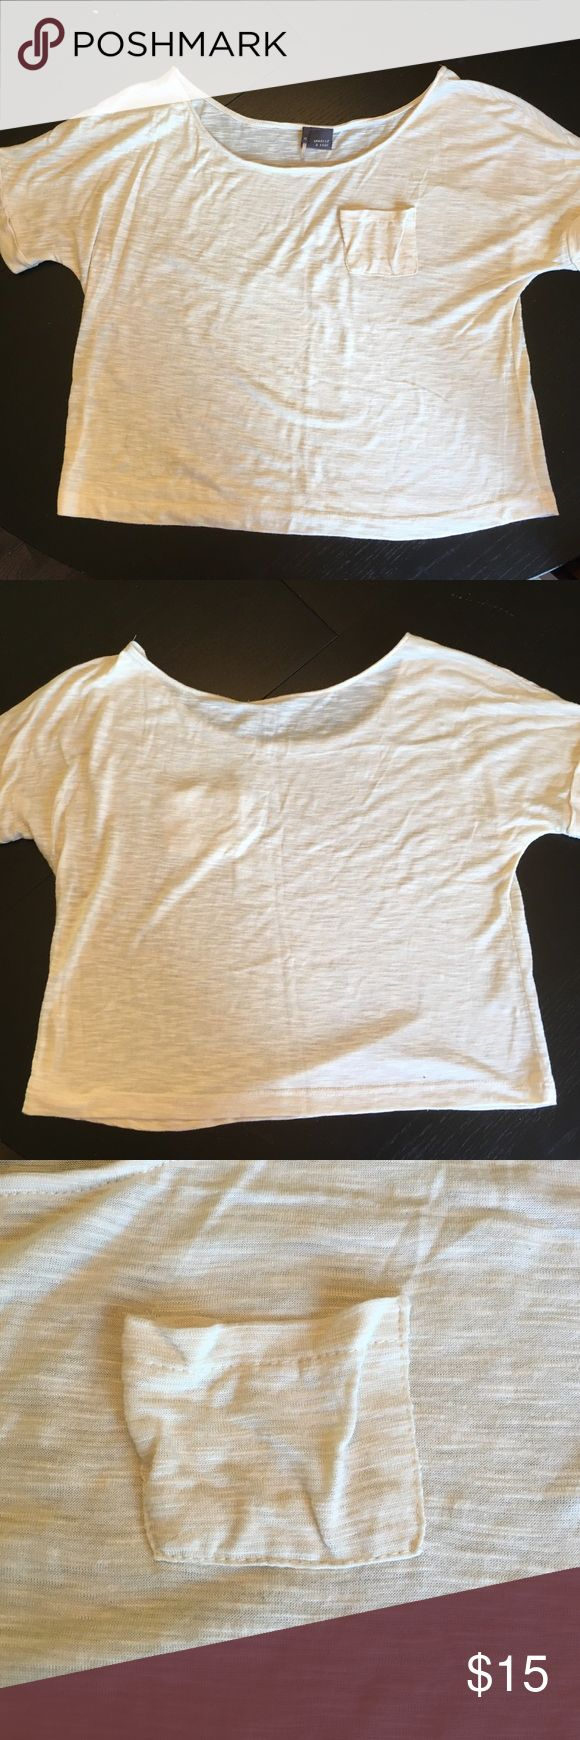 Cream crop top Cream crop top.  Features tiny Breast pocket. Urban outfitters sparkle and fade size xs. No materials tag. Urban Outfitters Tops Crop Tops